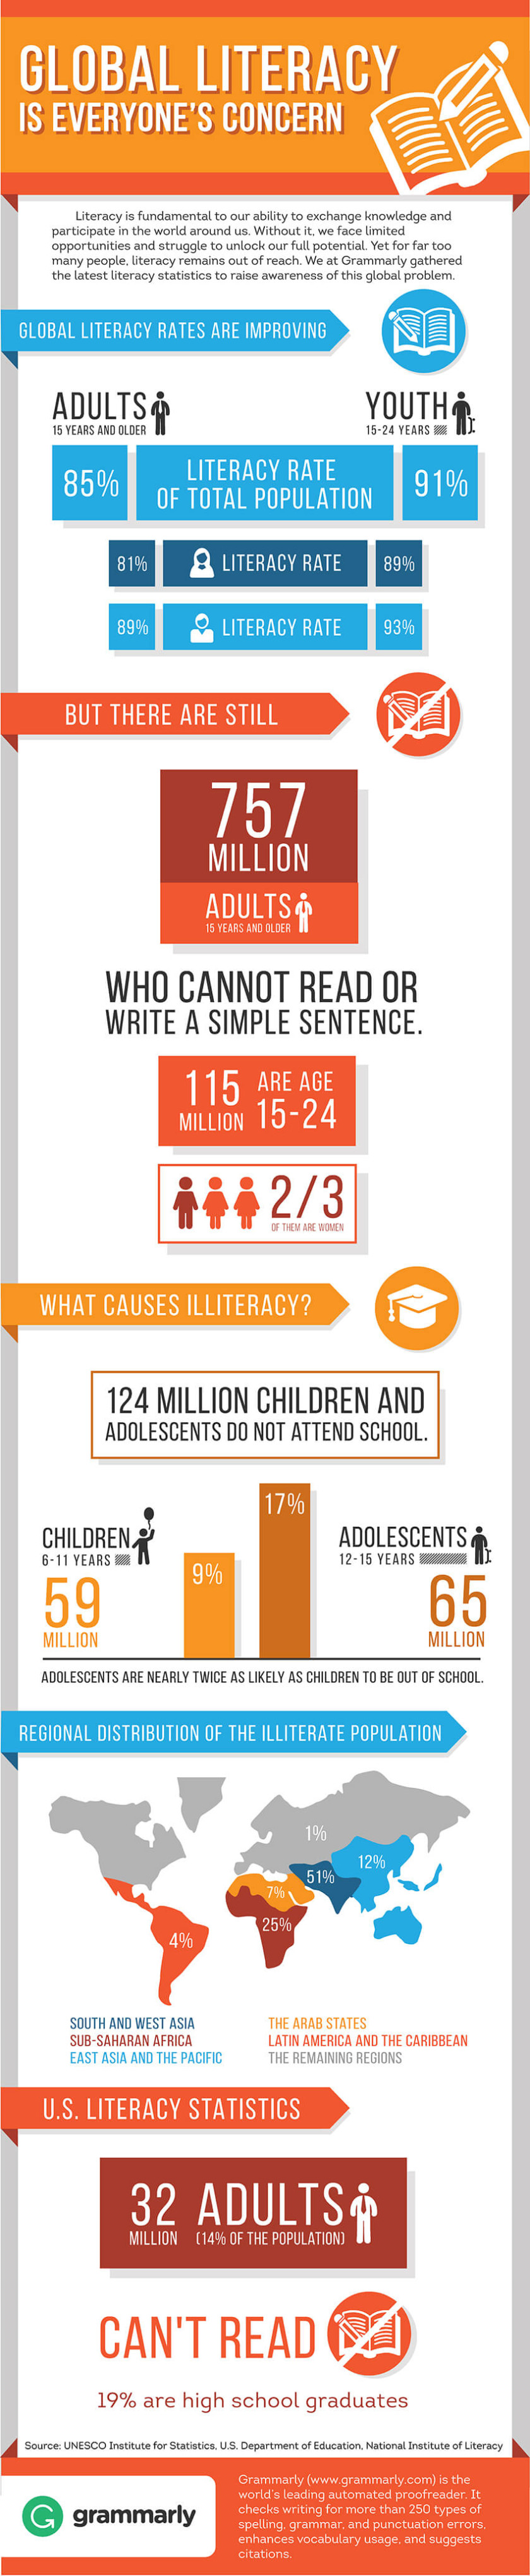 Global literacy in the digital age #infographic